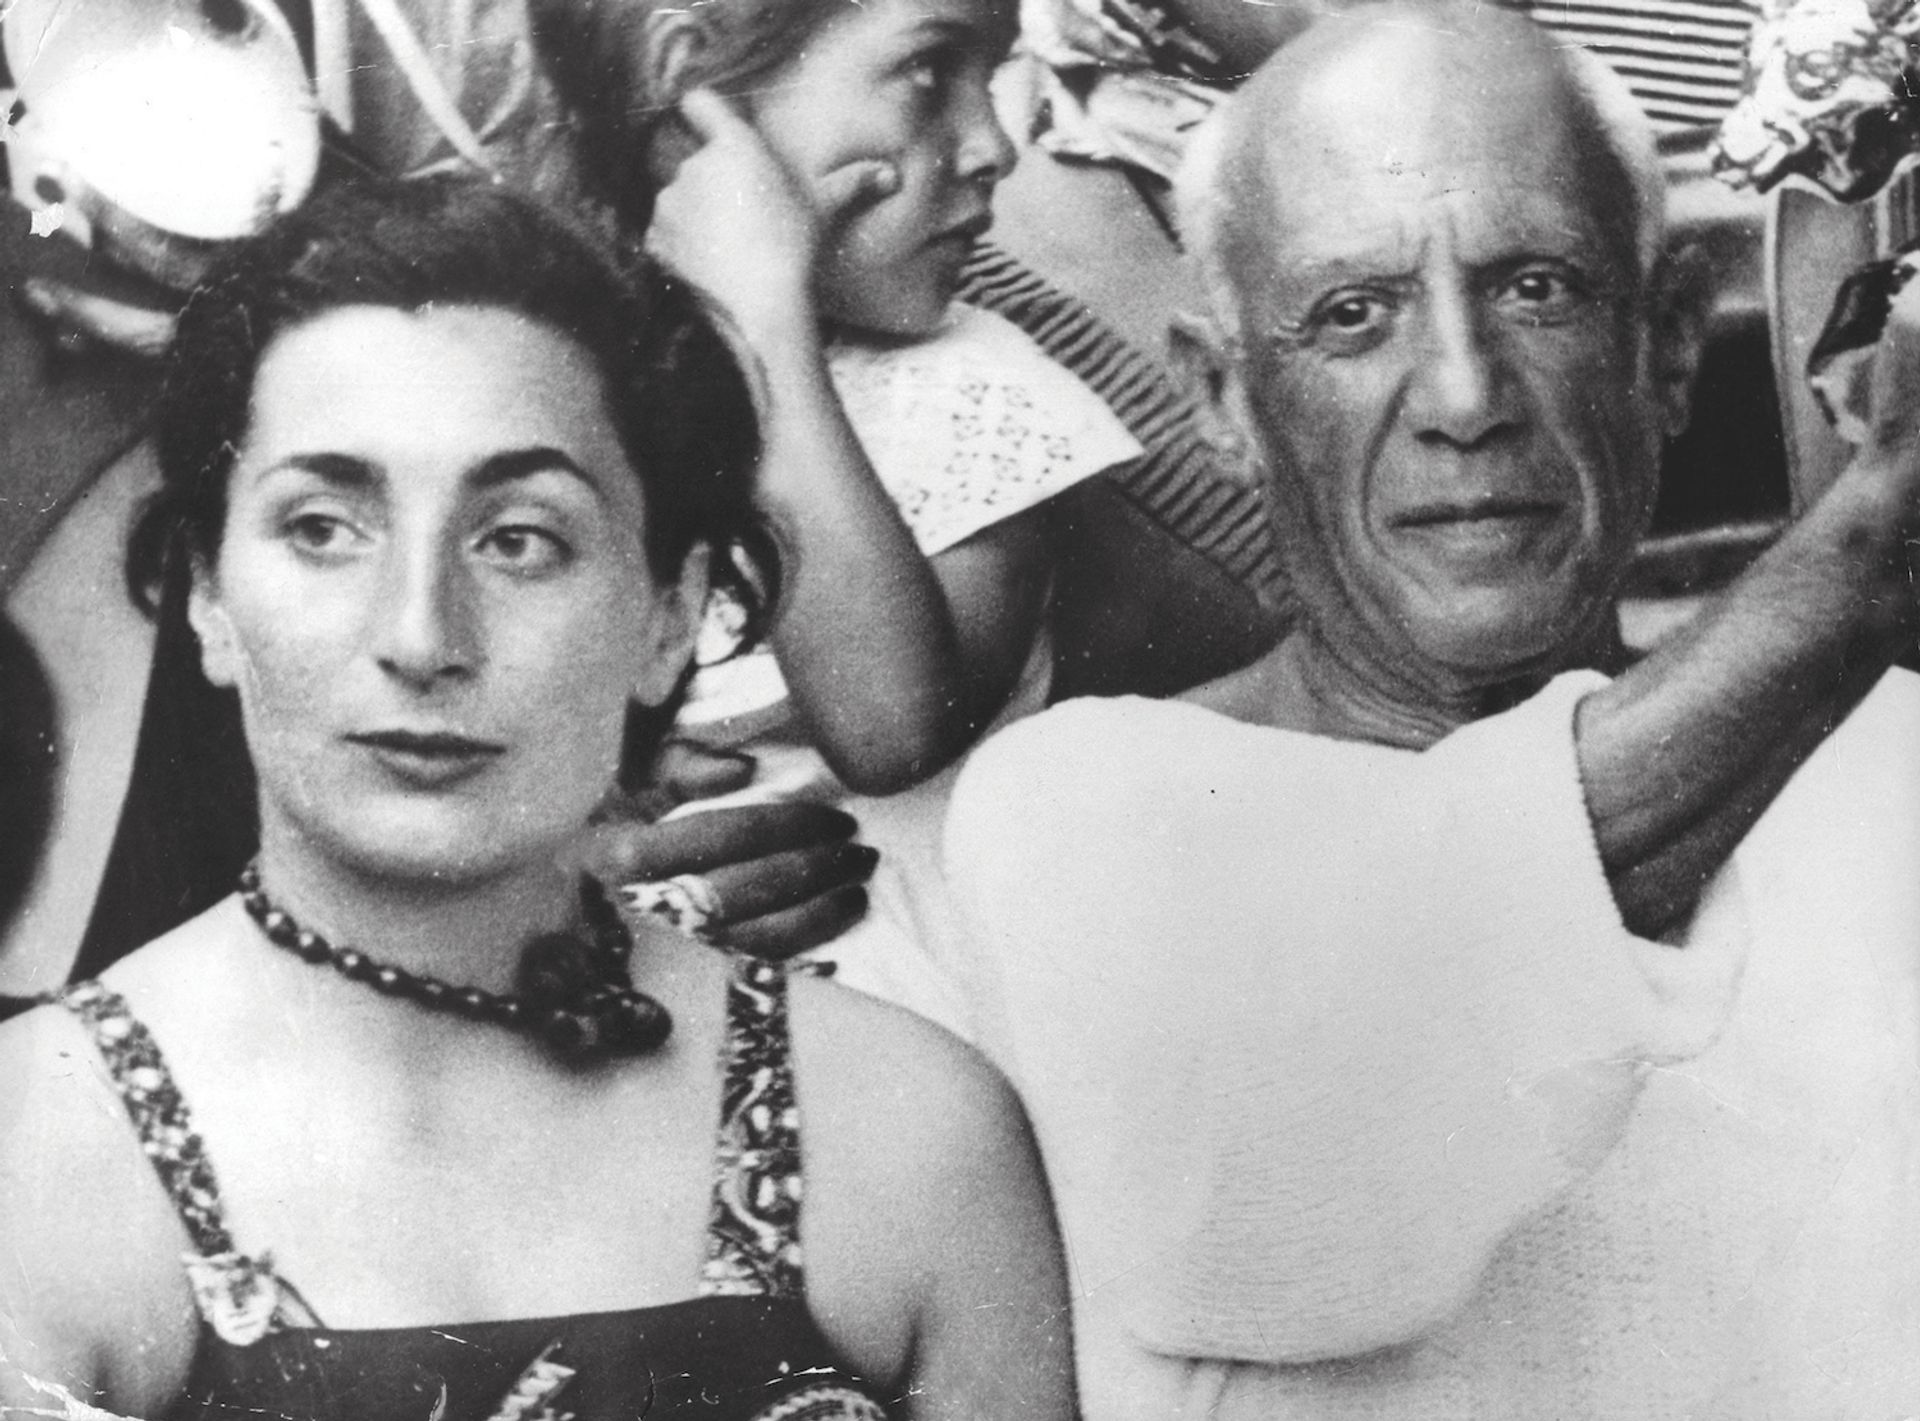 Picasso's Study for Lysistrata (1933) is among the works stolen from Catherine Hutin, whose mother Jacqueline (left) was married to the artist Keystone Press/Alamy Stock Photo